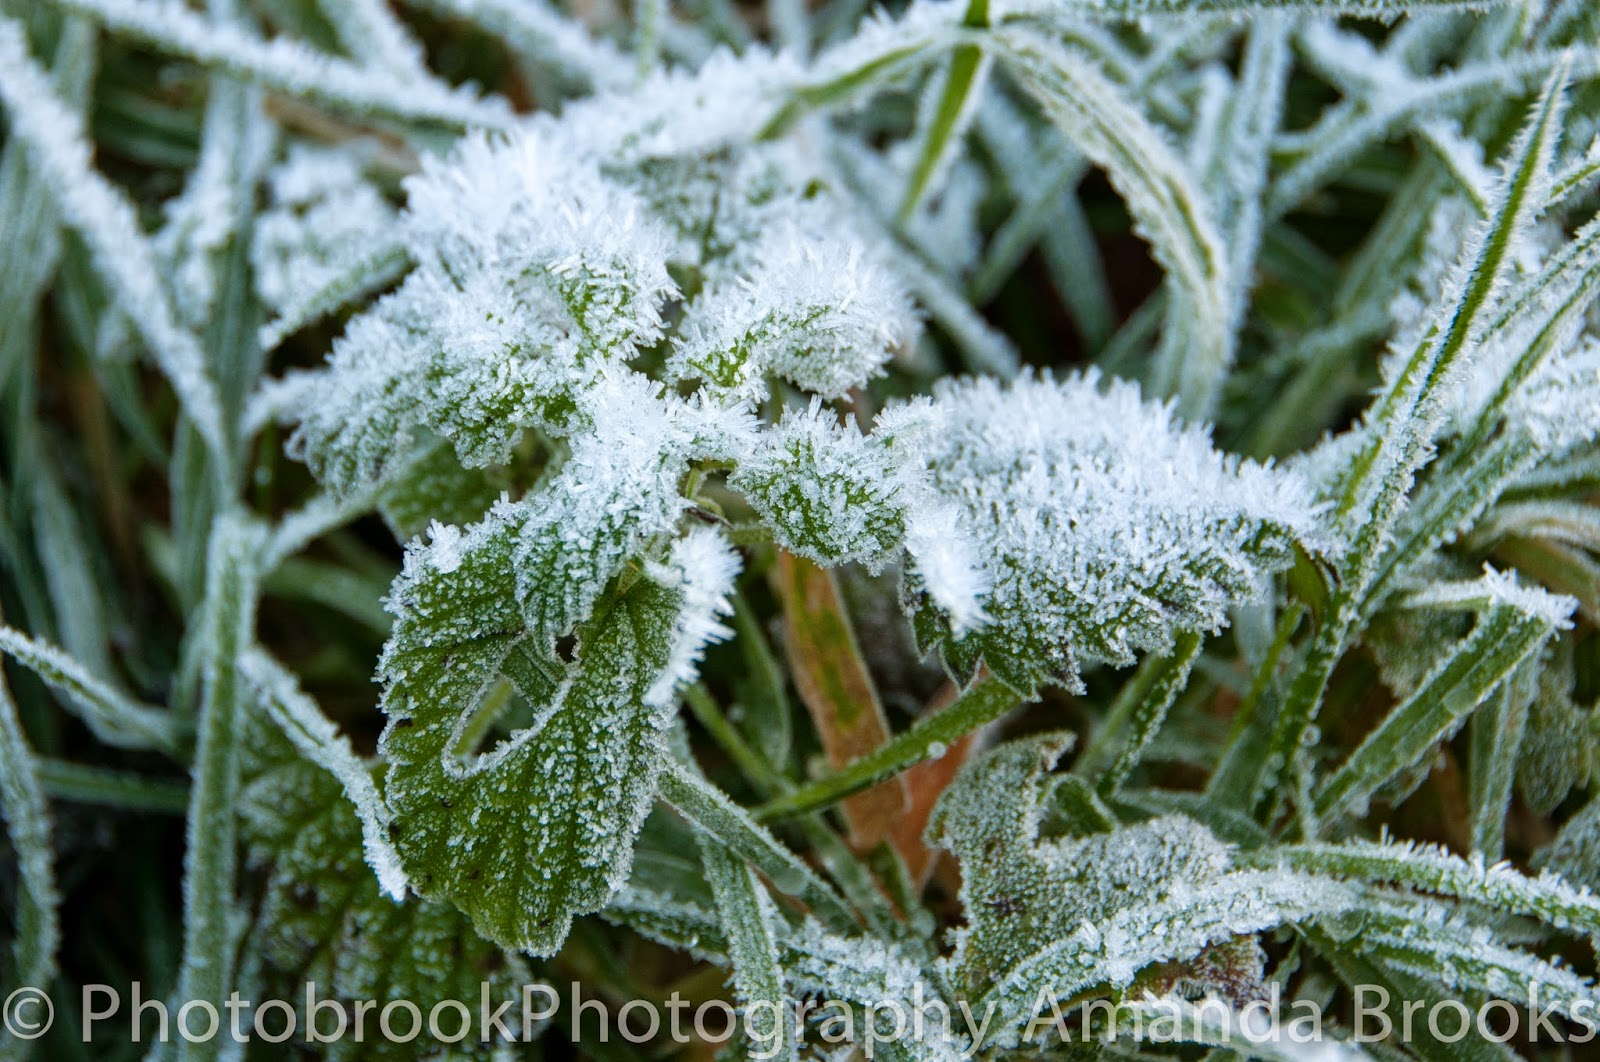 Heavy frost on leaves